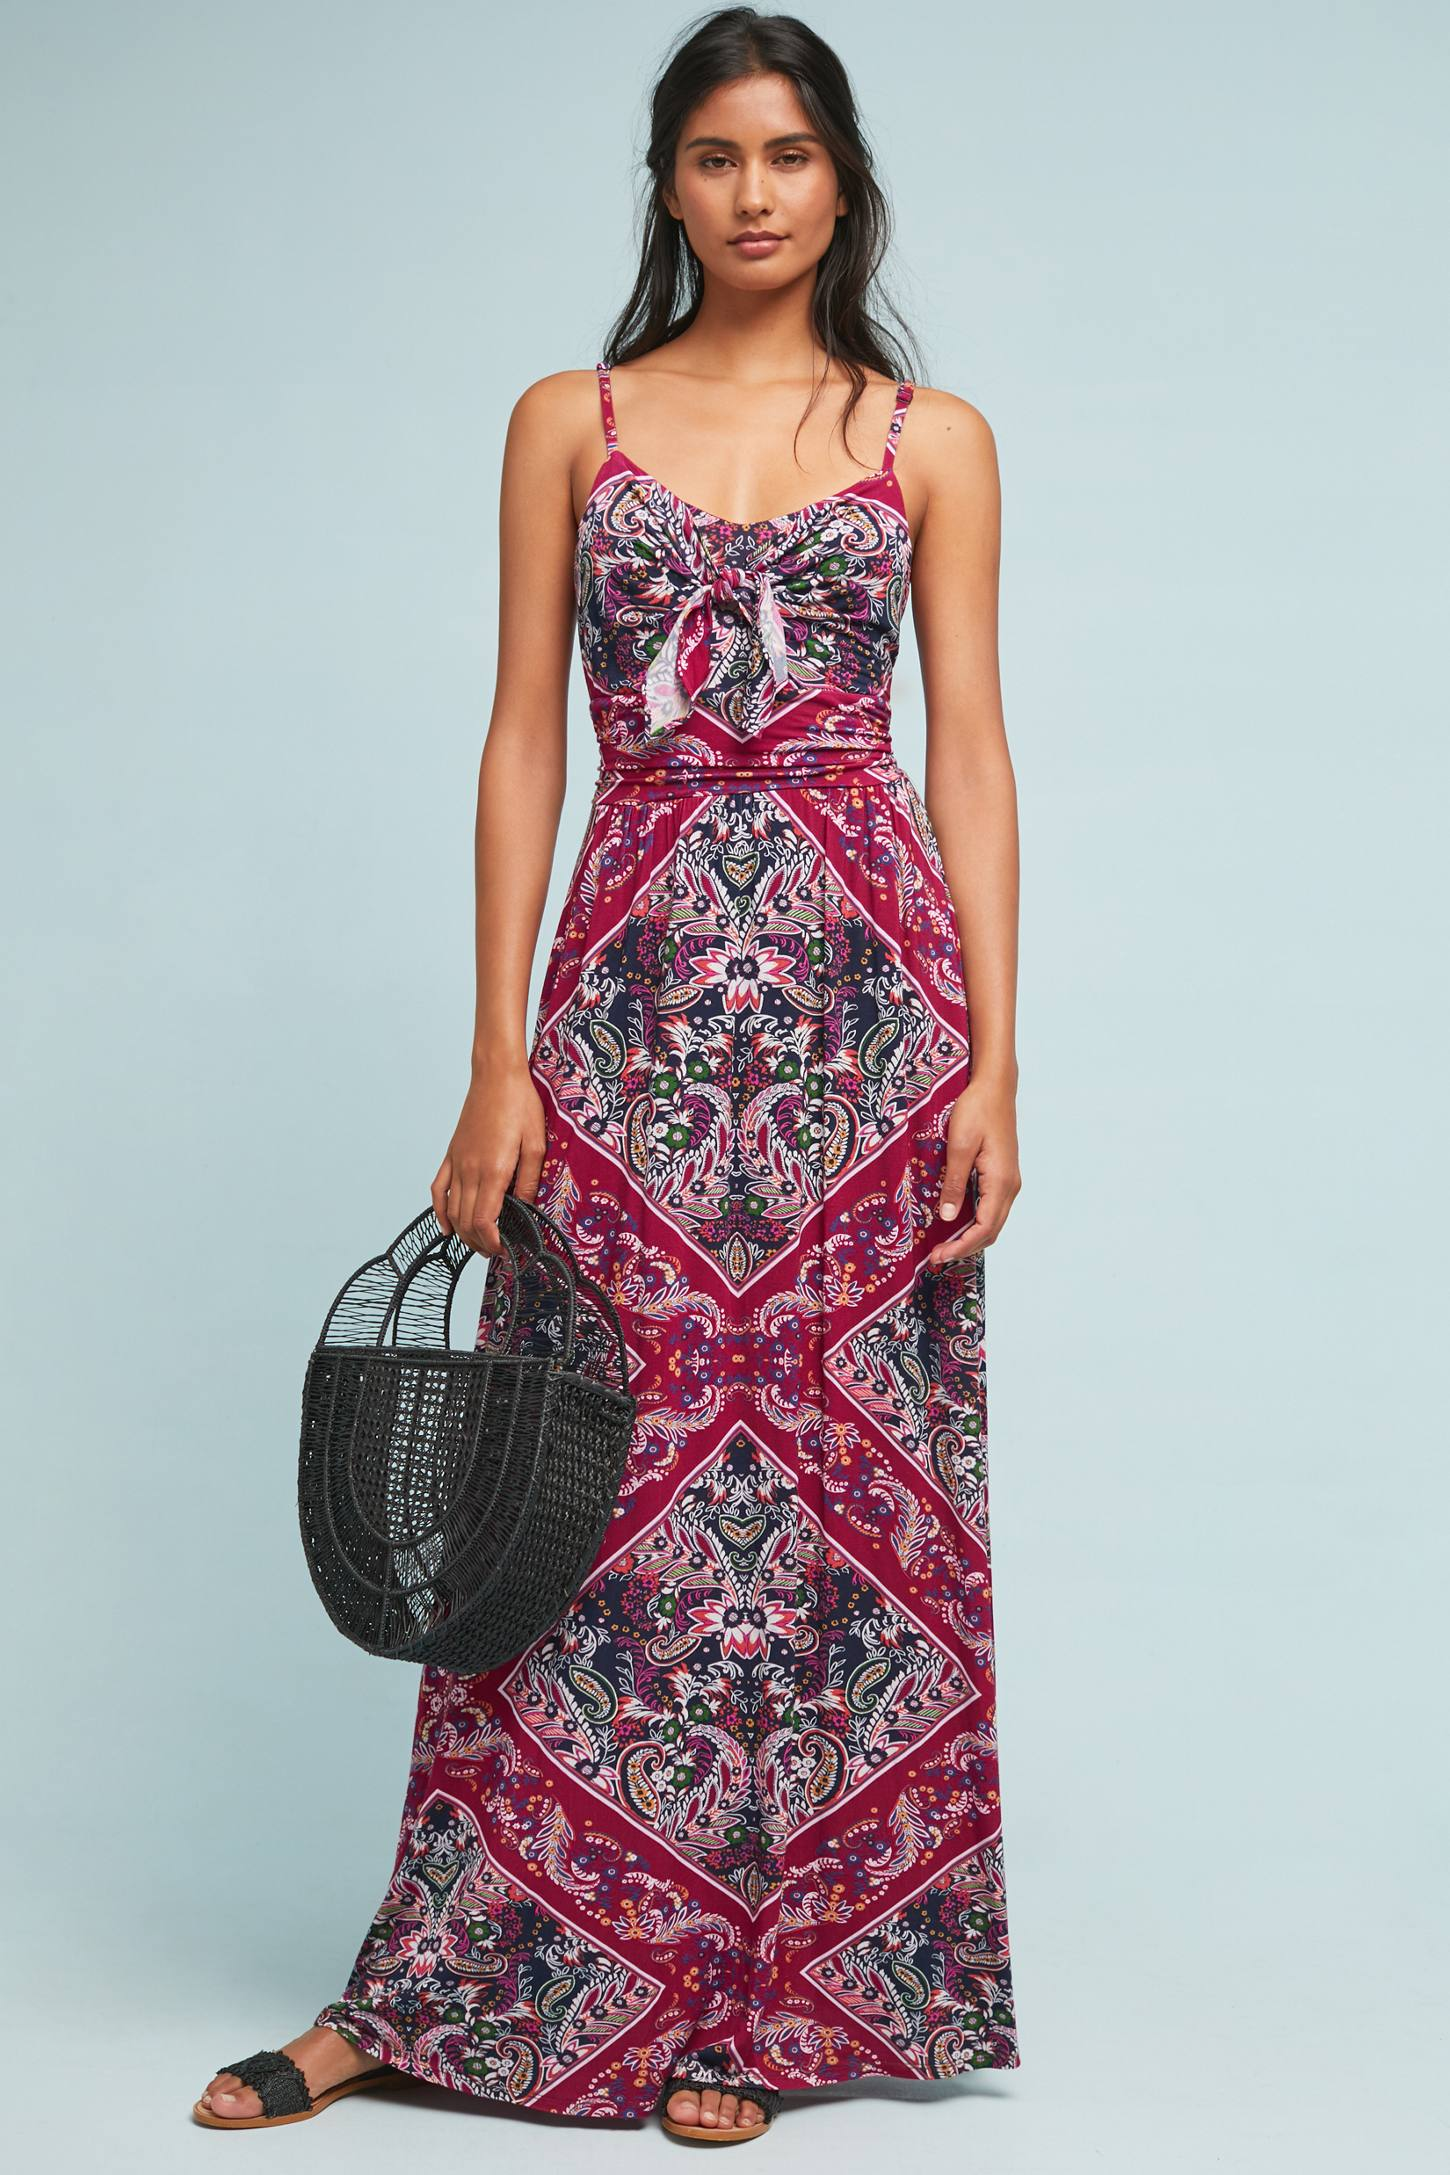 Brisbane Maxi Dress Anthropologie